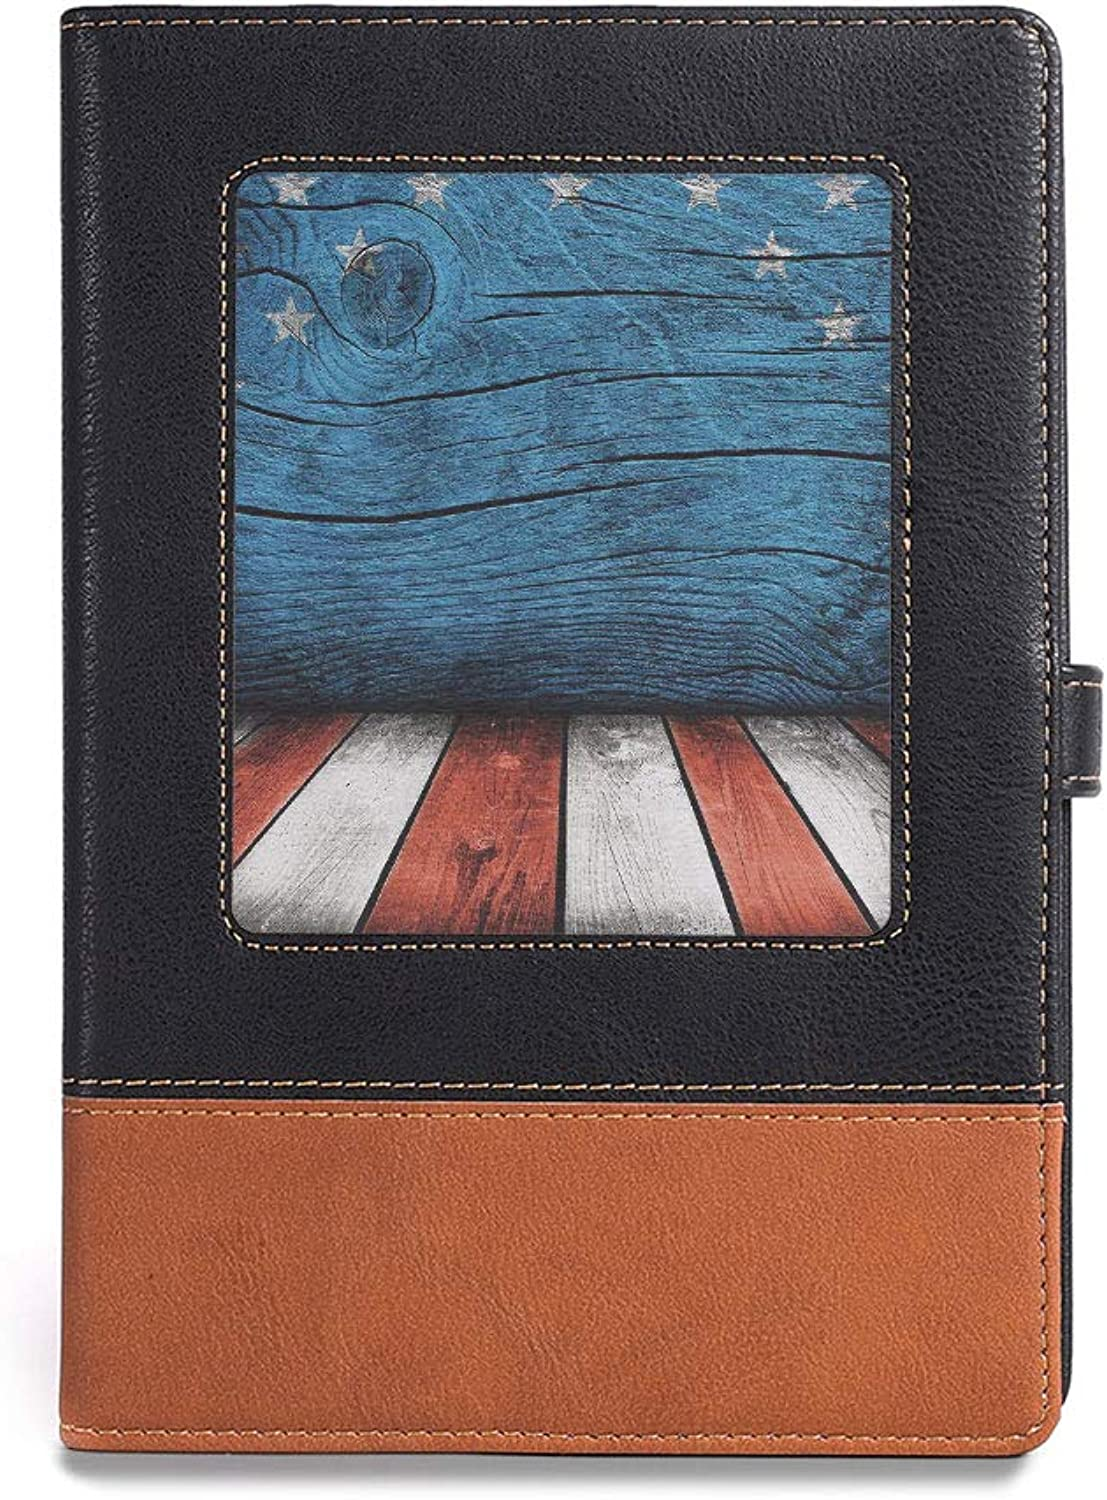 Travel Journal Diary Notebook,Primitive Country,A5(6.1  x 8.6 ),for Travelers,Rustic Empty Wooden Pattern Interior American Flag Design,